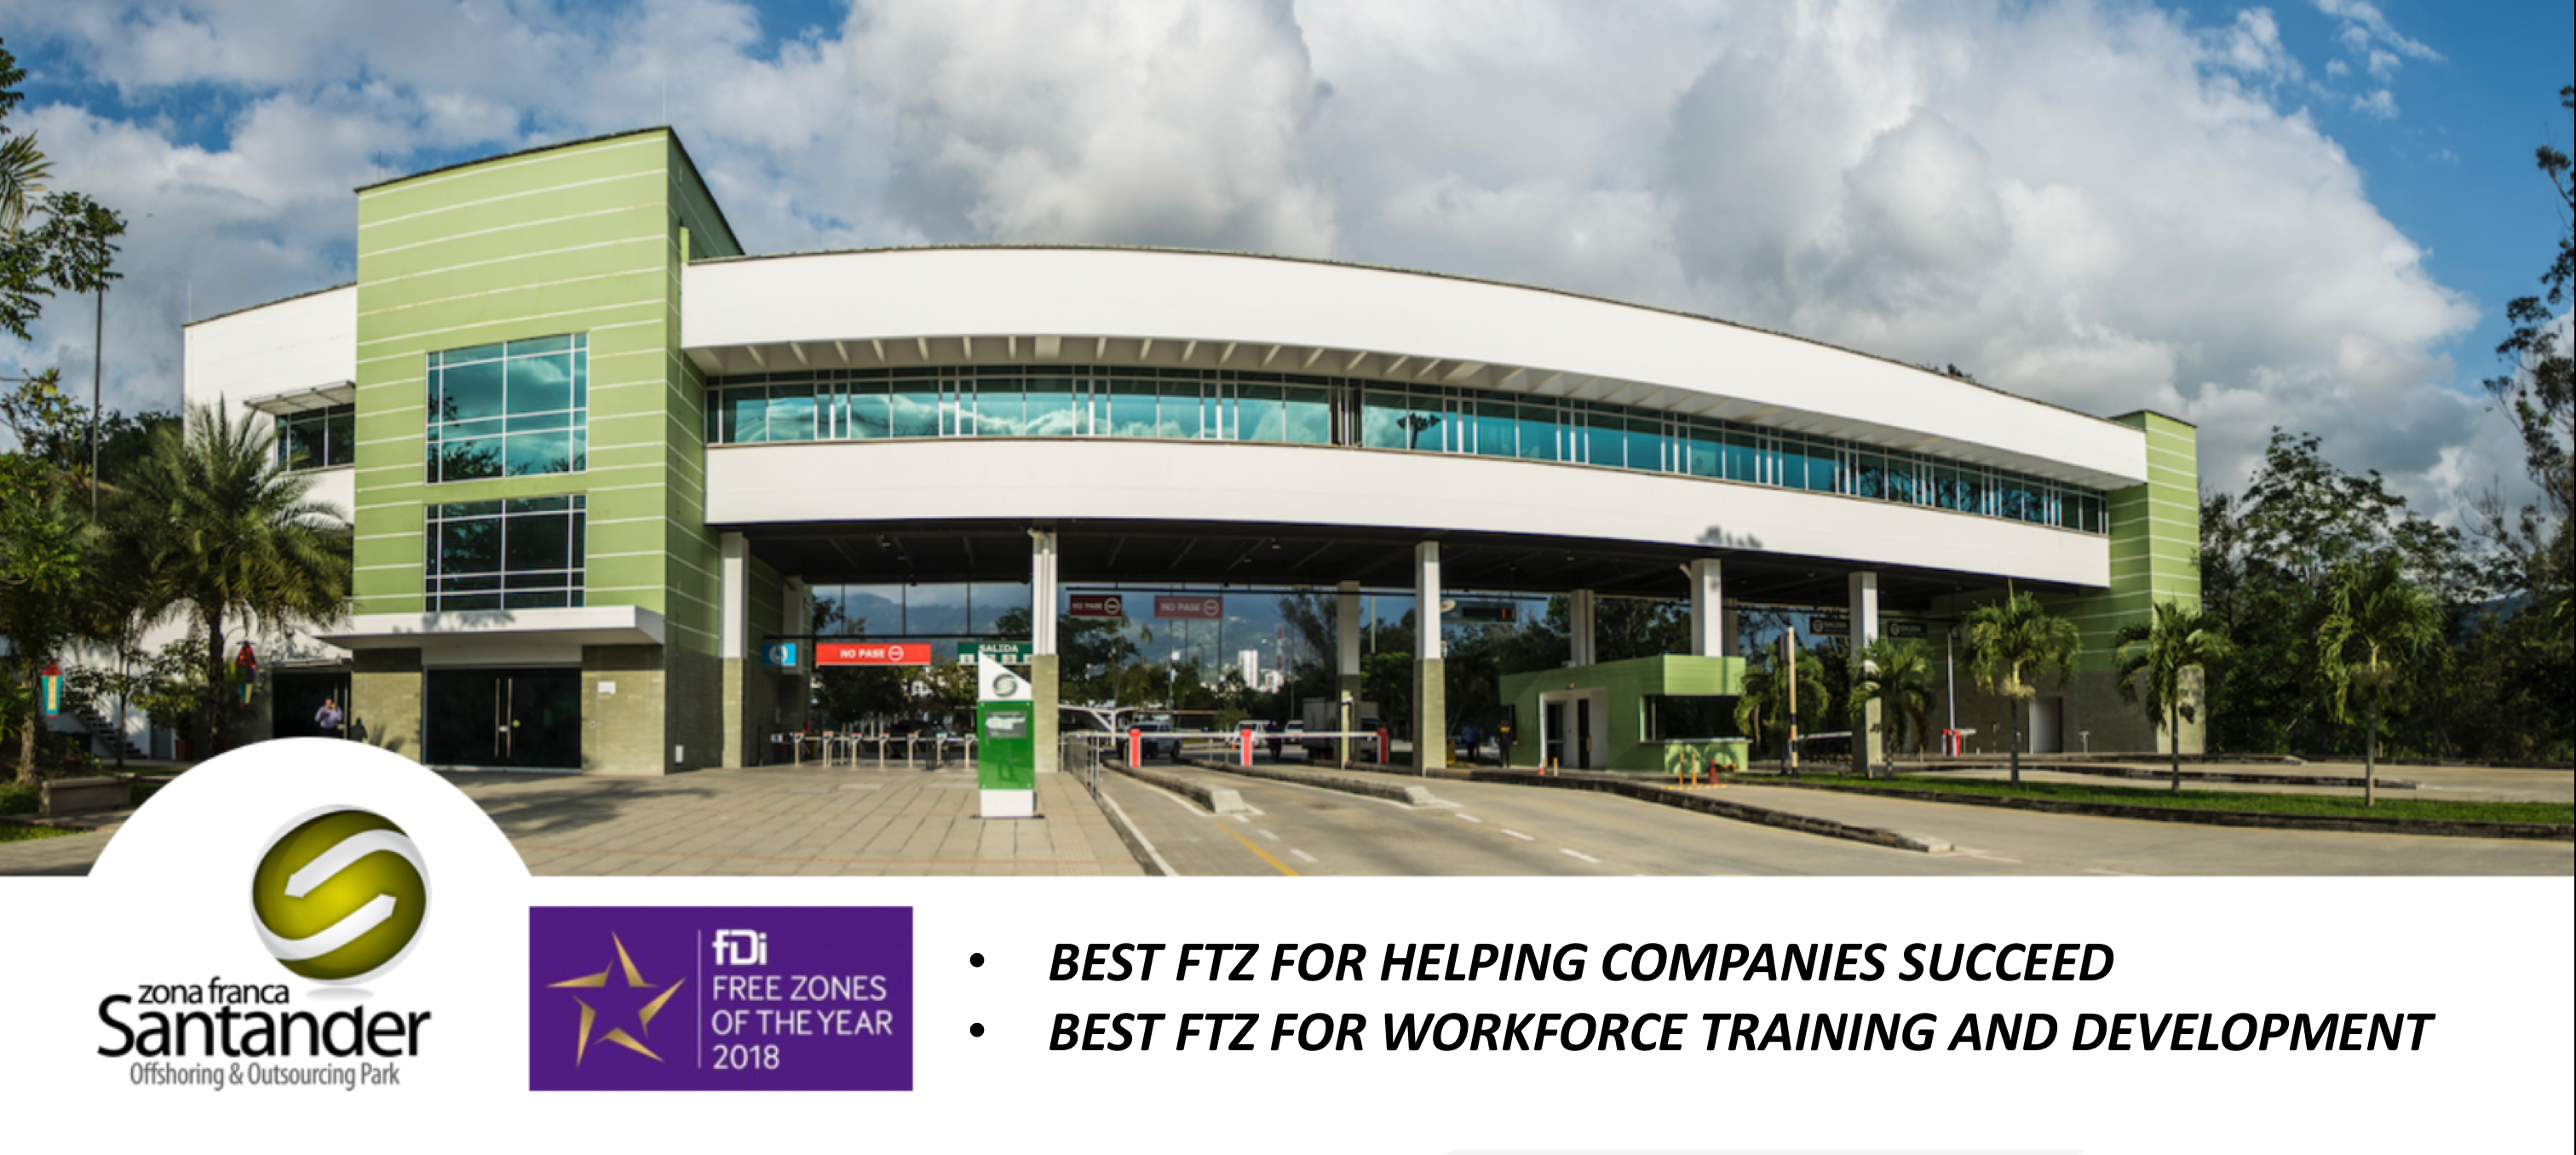 Zona Franca Santander is recognized worldwide as the Best FTZ for helping companies succeed and is the Best FTZ for workforce training and development